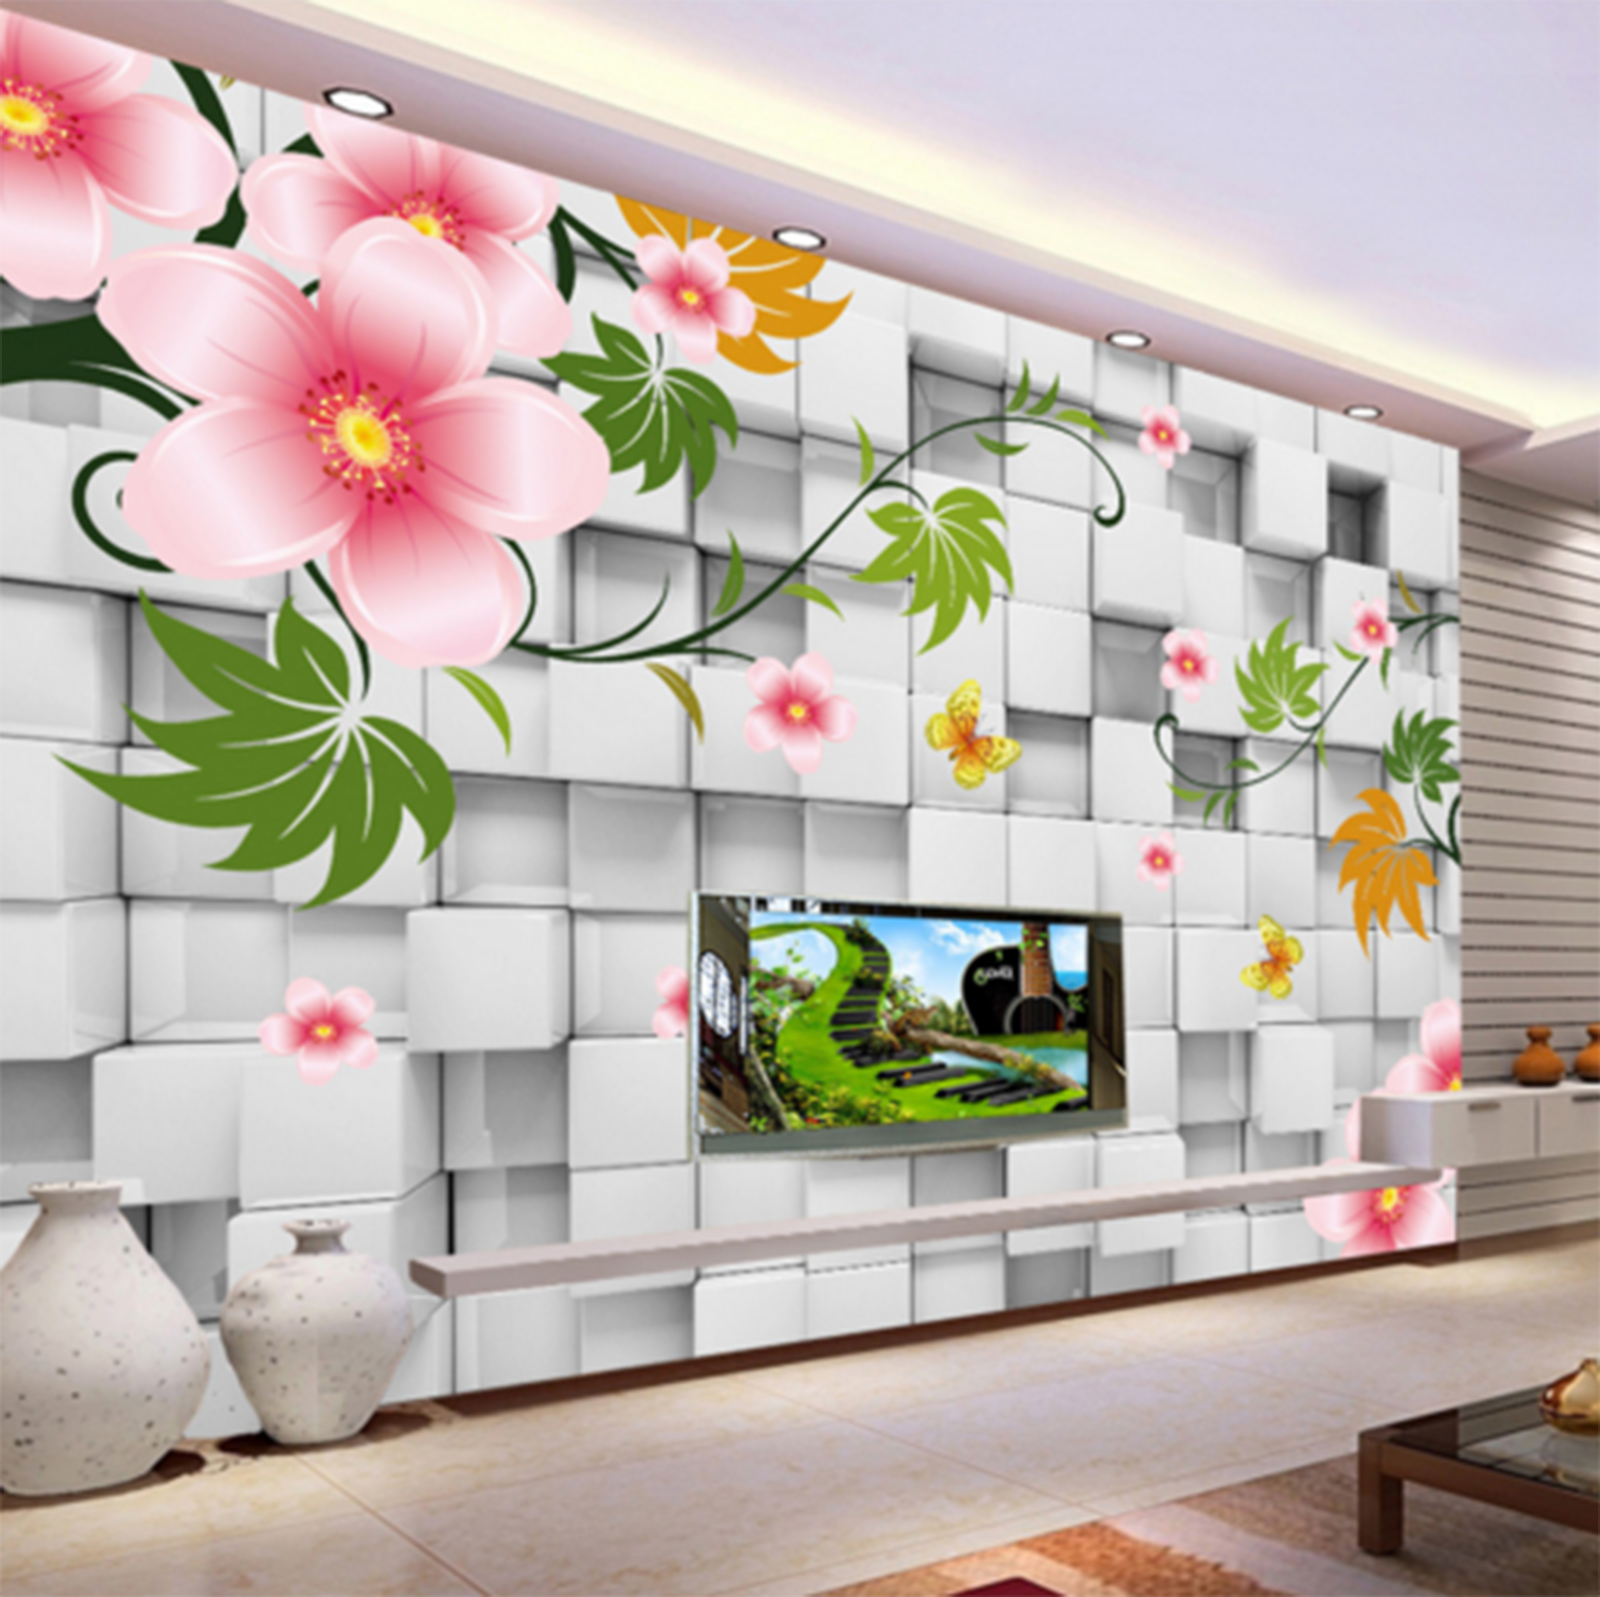 3D Flower Vine 587 Wallpaper Murals Wall Print Wallpaper Mural AJ WALL AU Kyra